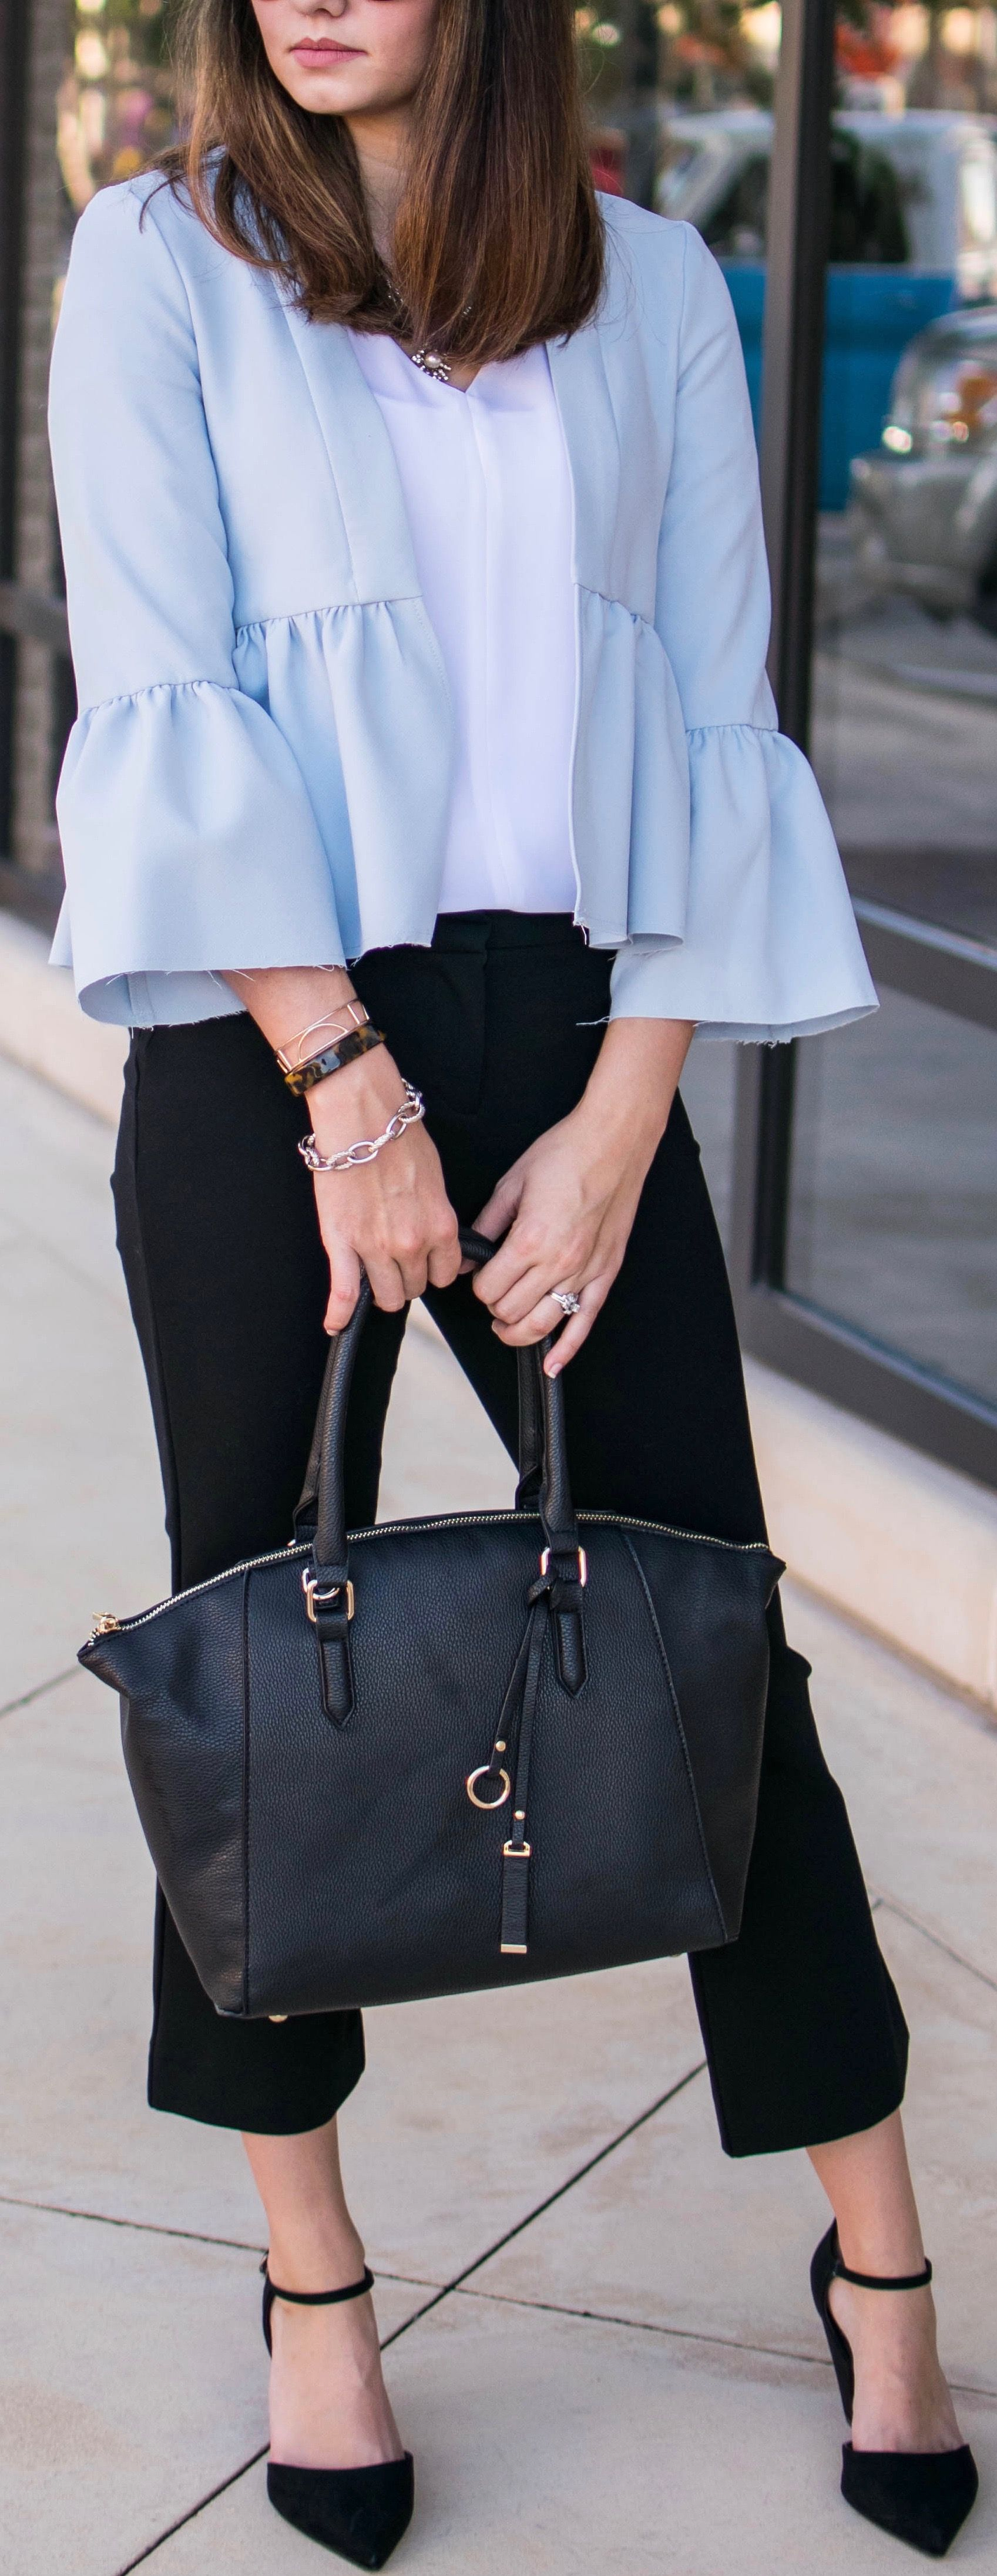 How To Have Great Work Outfits On A Small Budget